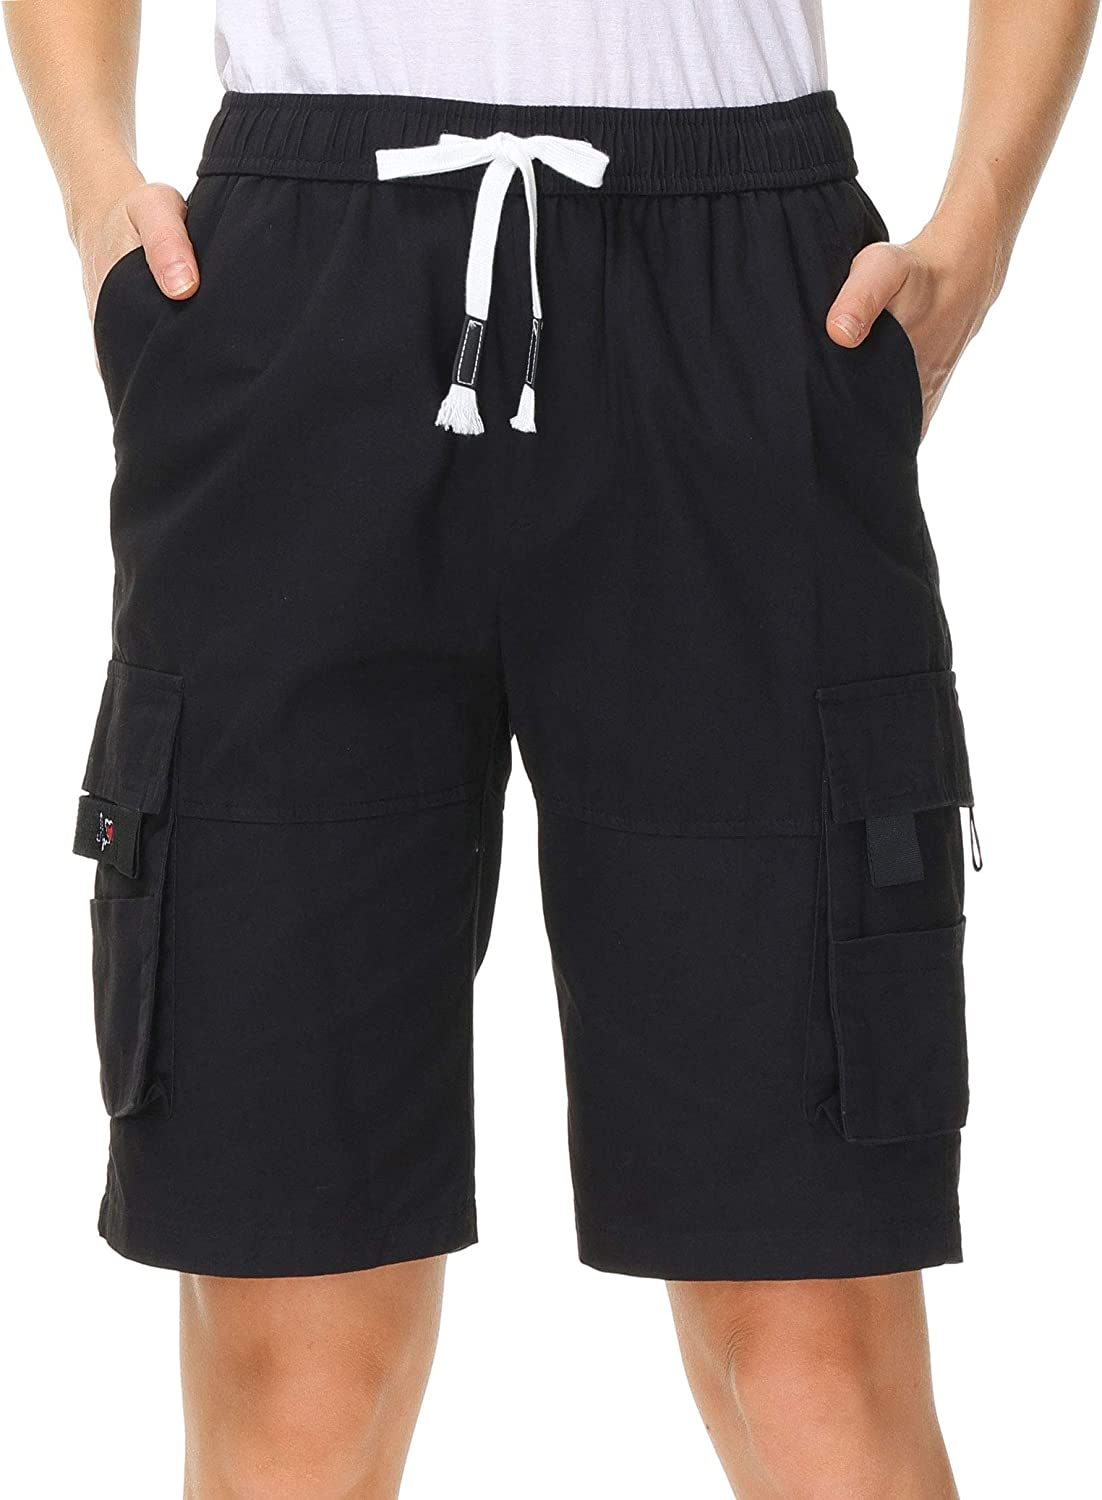 HOW'ON Women's Casual Cash special price Loose Fit Cargo Indianapolis Mall Multi Bermuda Shorts Twill